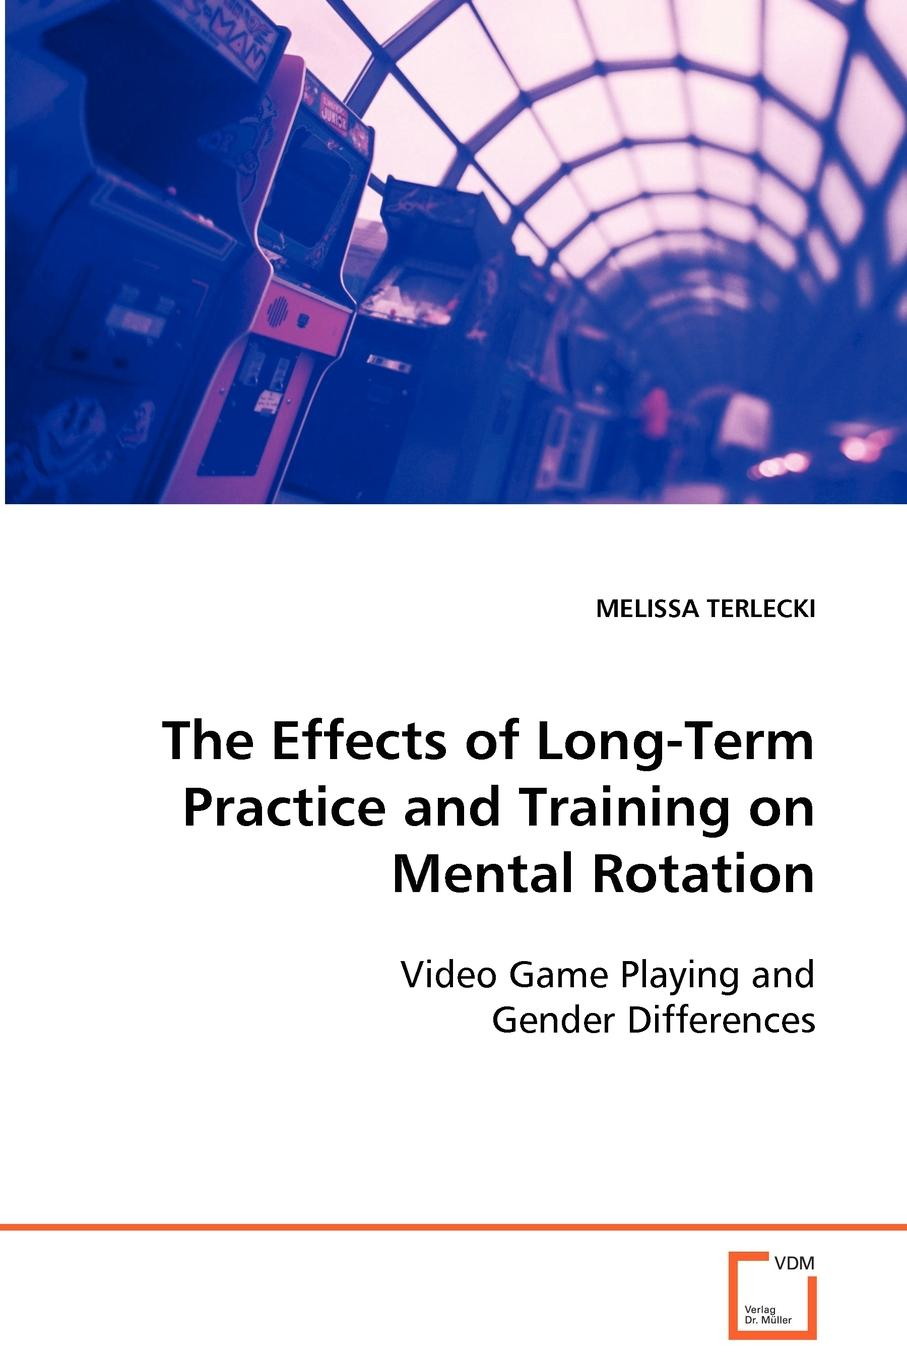 MELISSA TERLECKI The Effects of Long-Term Practice and Training on Mental Rotation mental